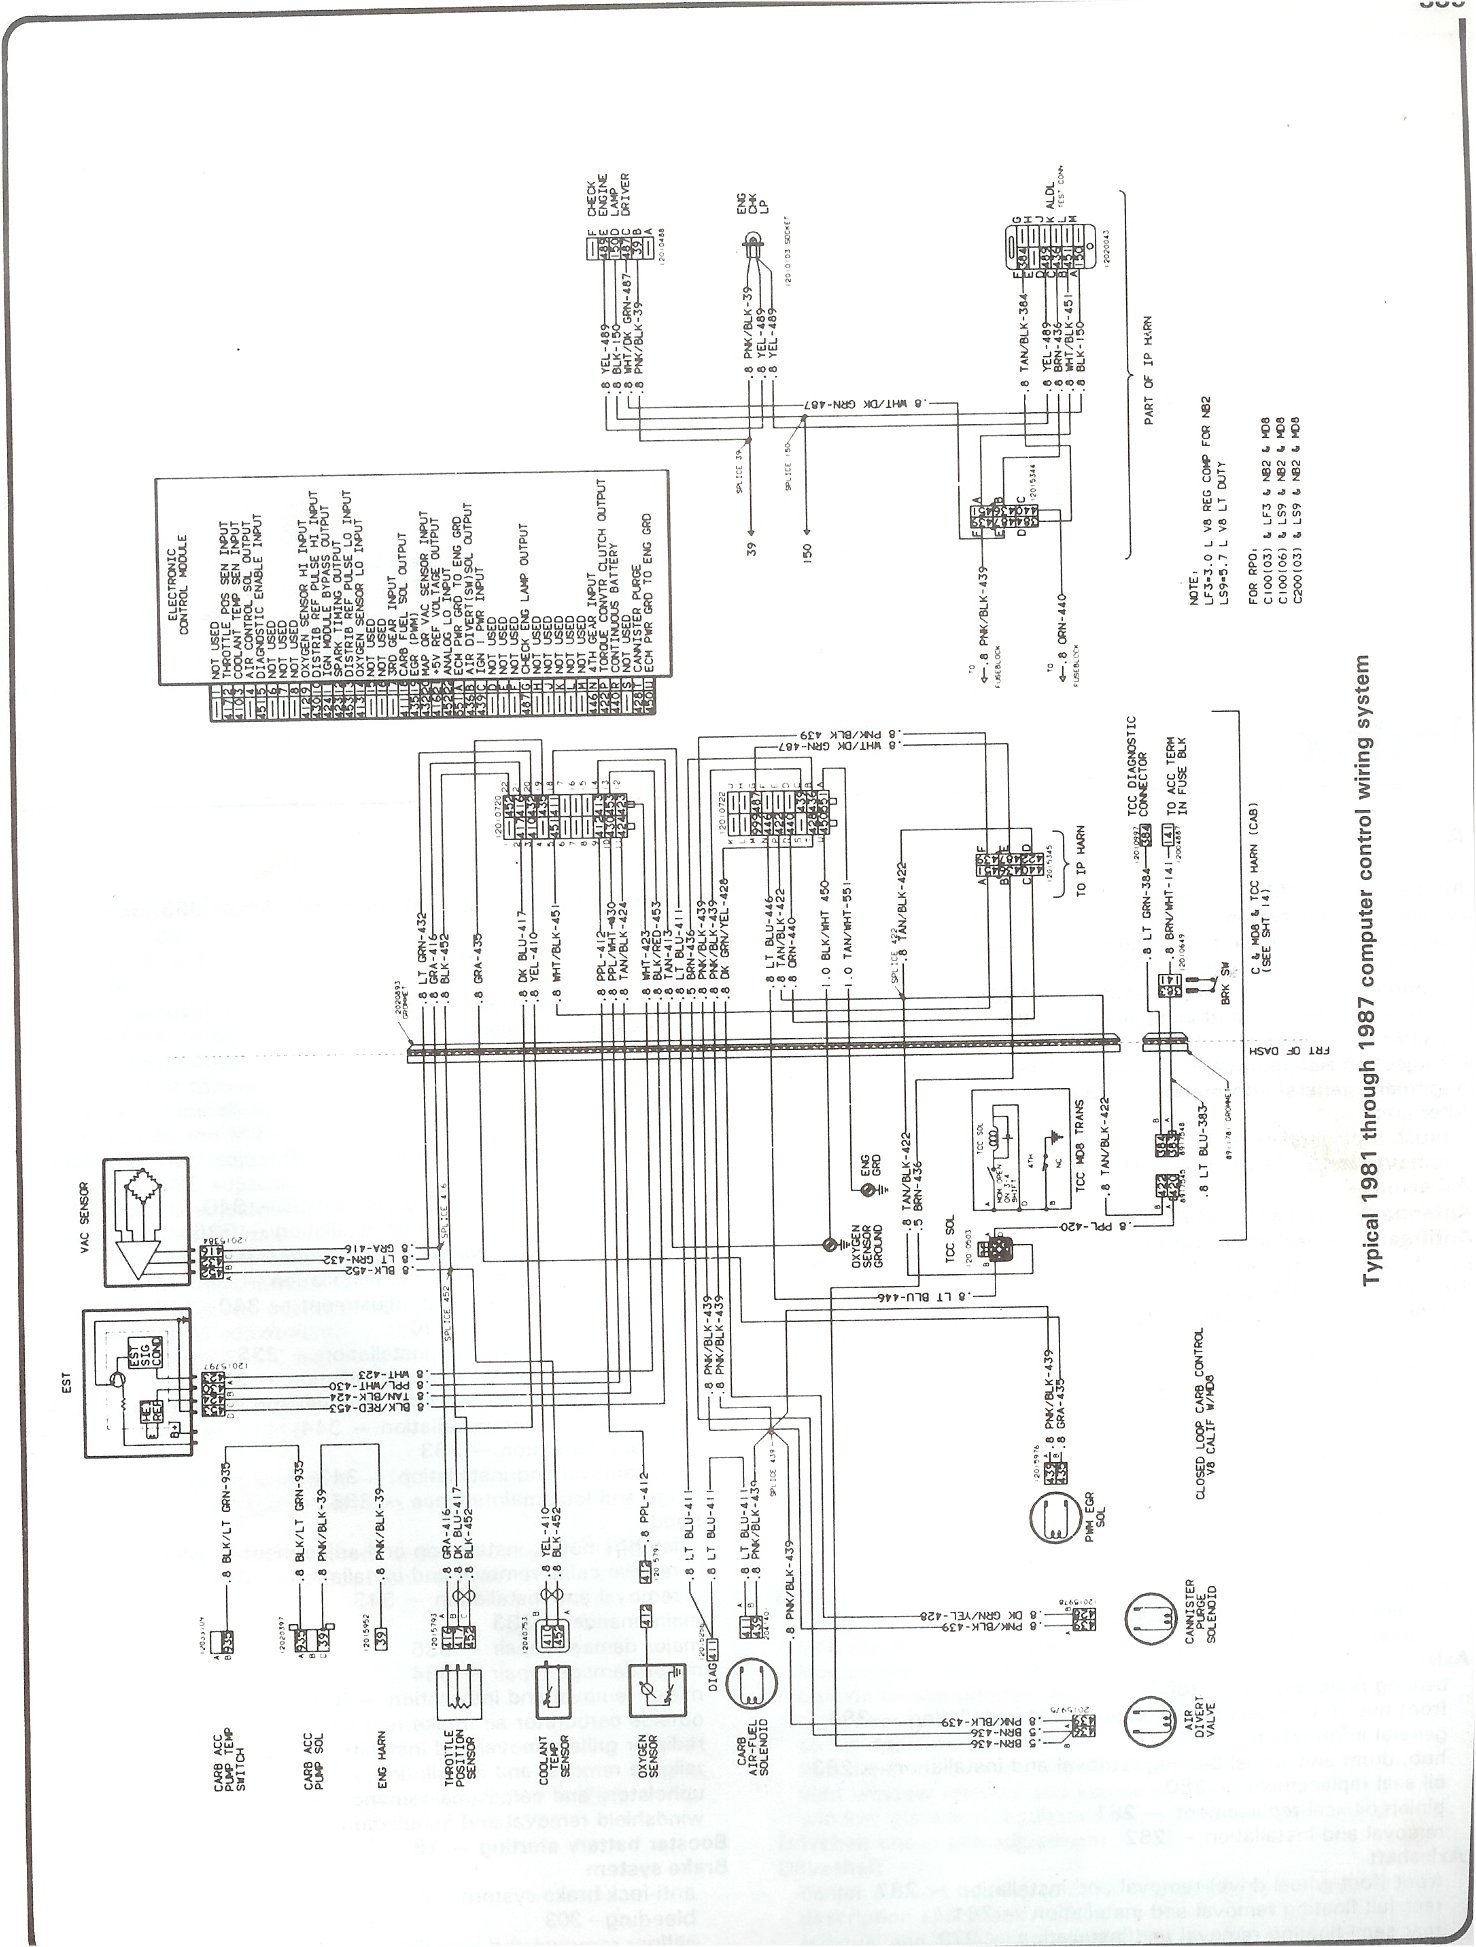 1982 C10 Fuse Box Wiring Diagram Libraries 2004 Chevy Colorado Library82 Electrical Drawing